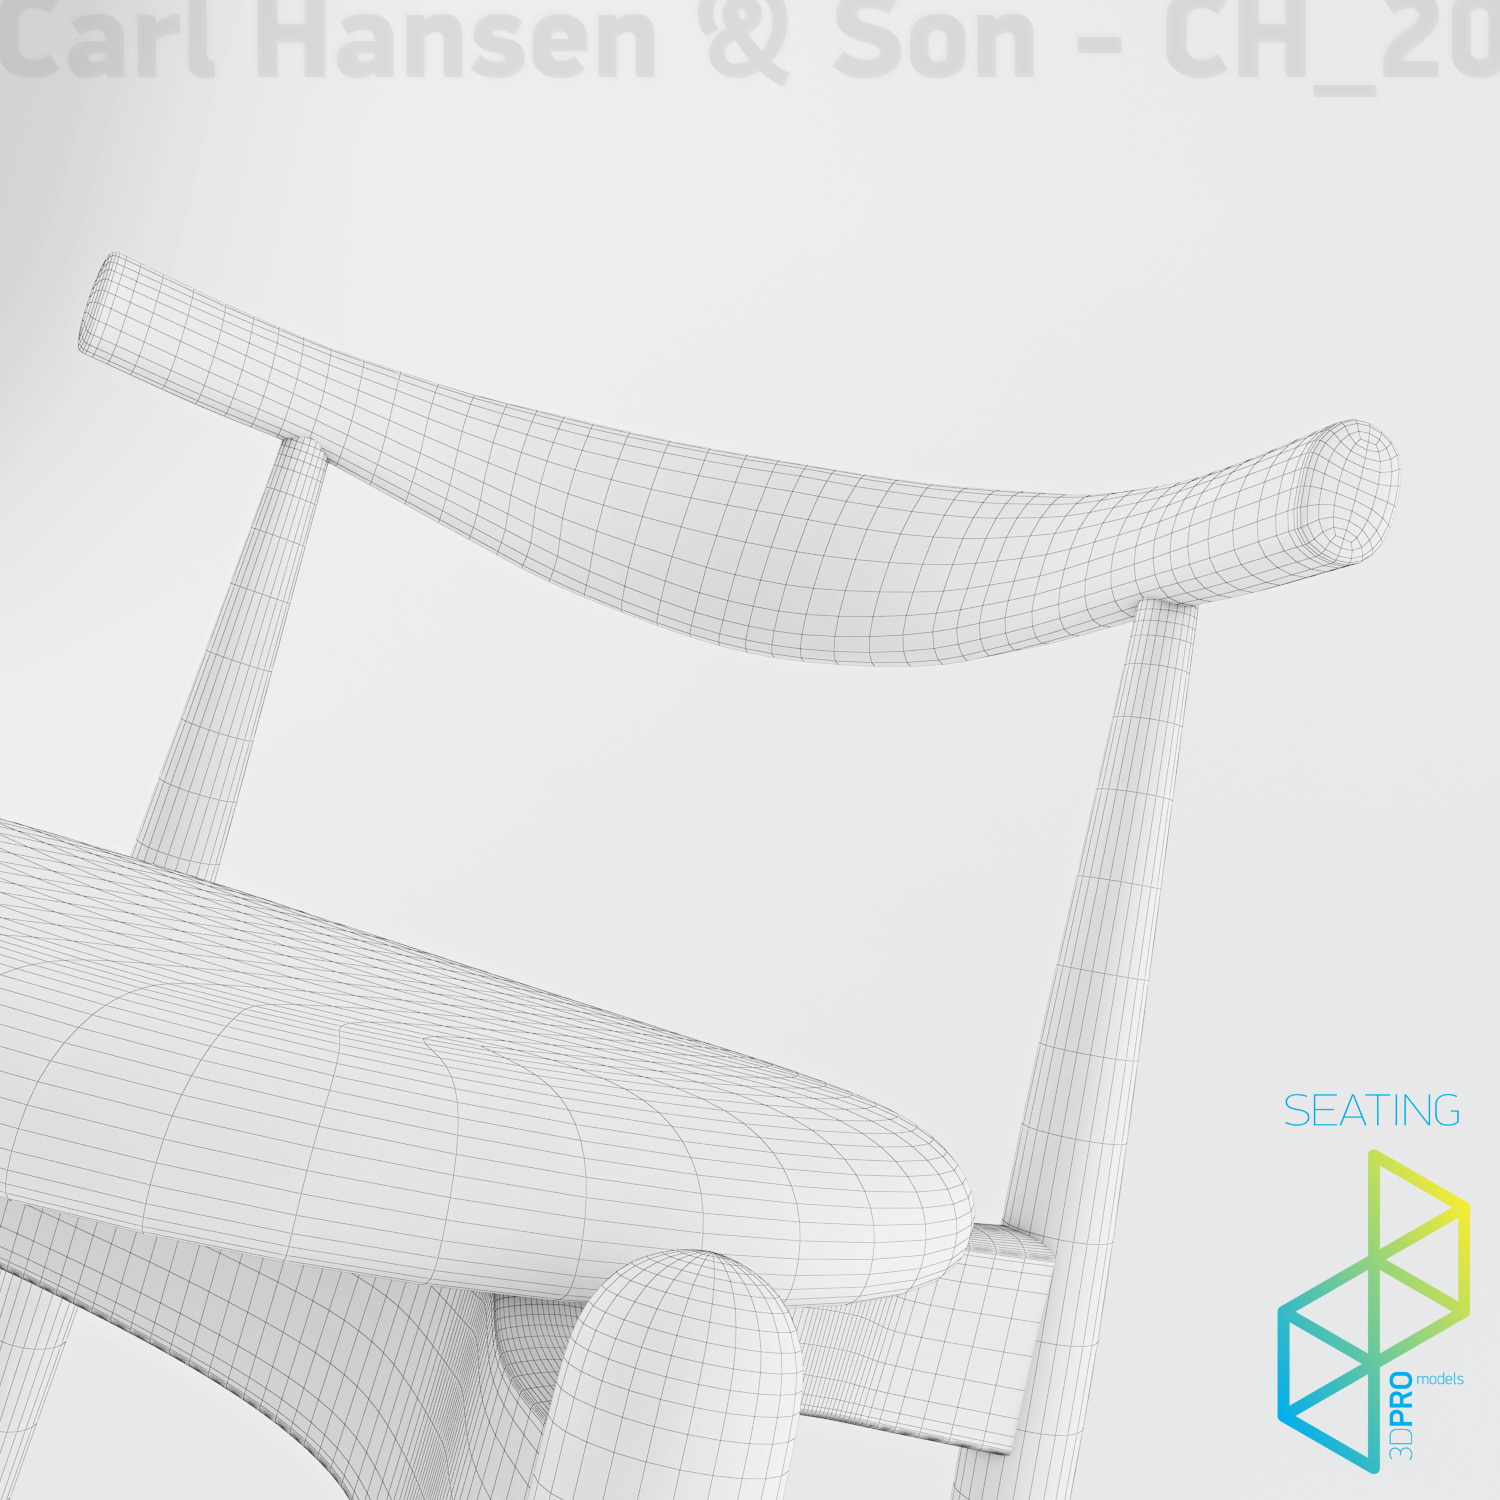 Carl Hansen Son CH20 Elbow chair 3D Model MAX OBJ 3DS  : carl hansen son ch20 elbow chair 3d model max obj 3ds from www.cgtrader.com size 1500 x 1500 jpeg 265kB